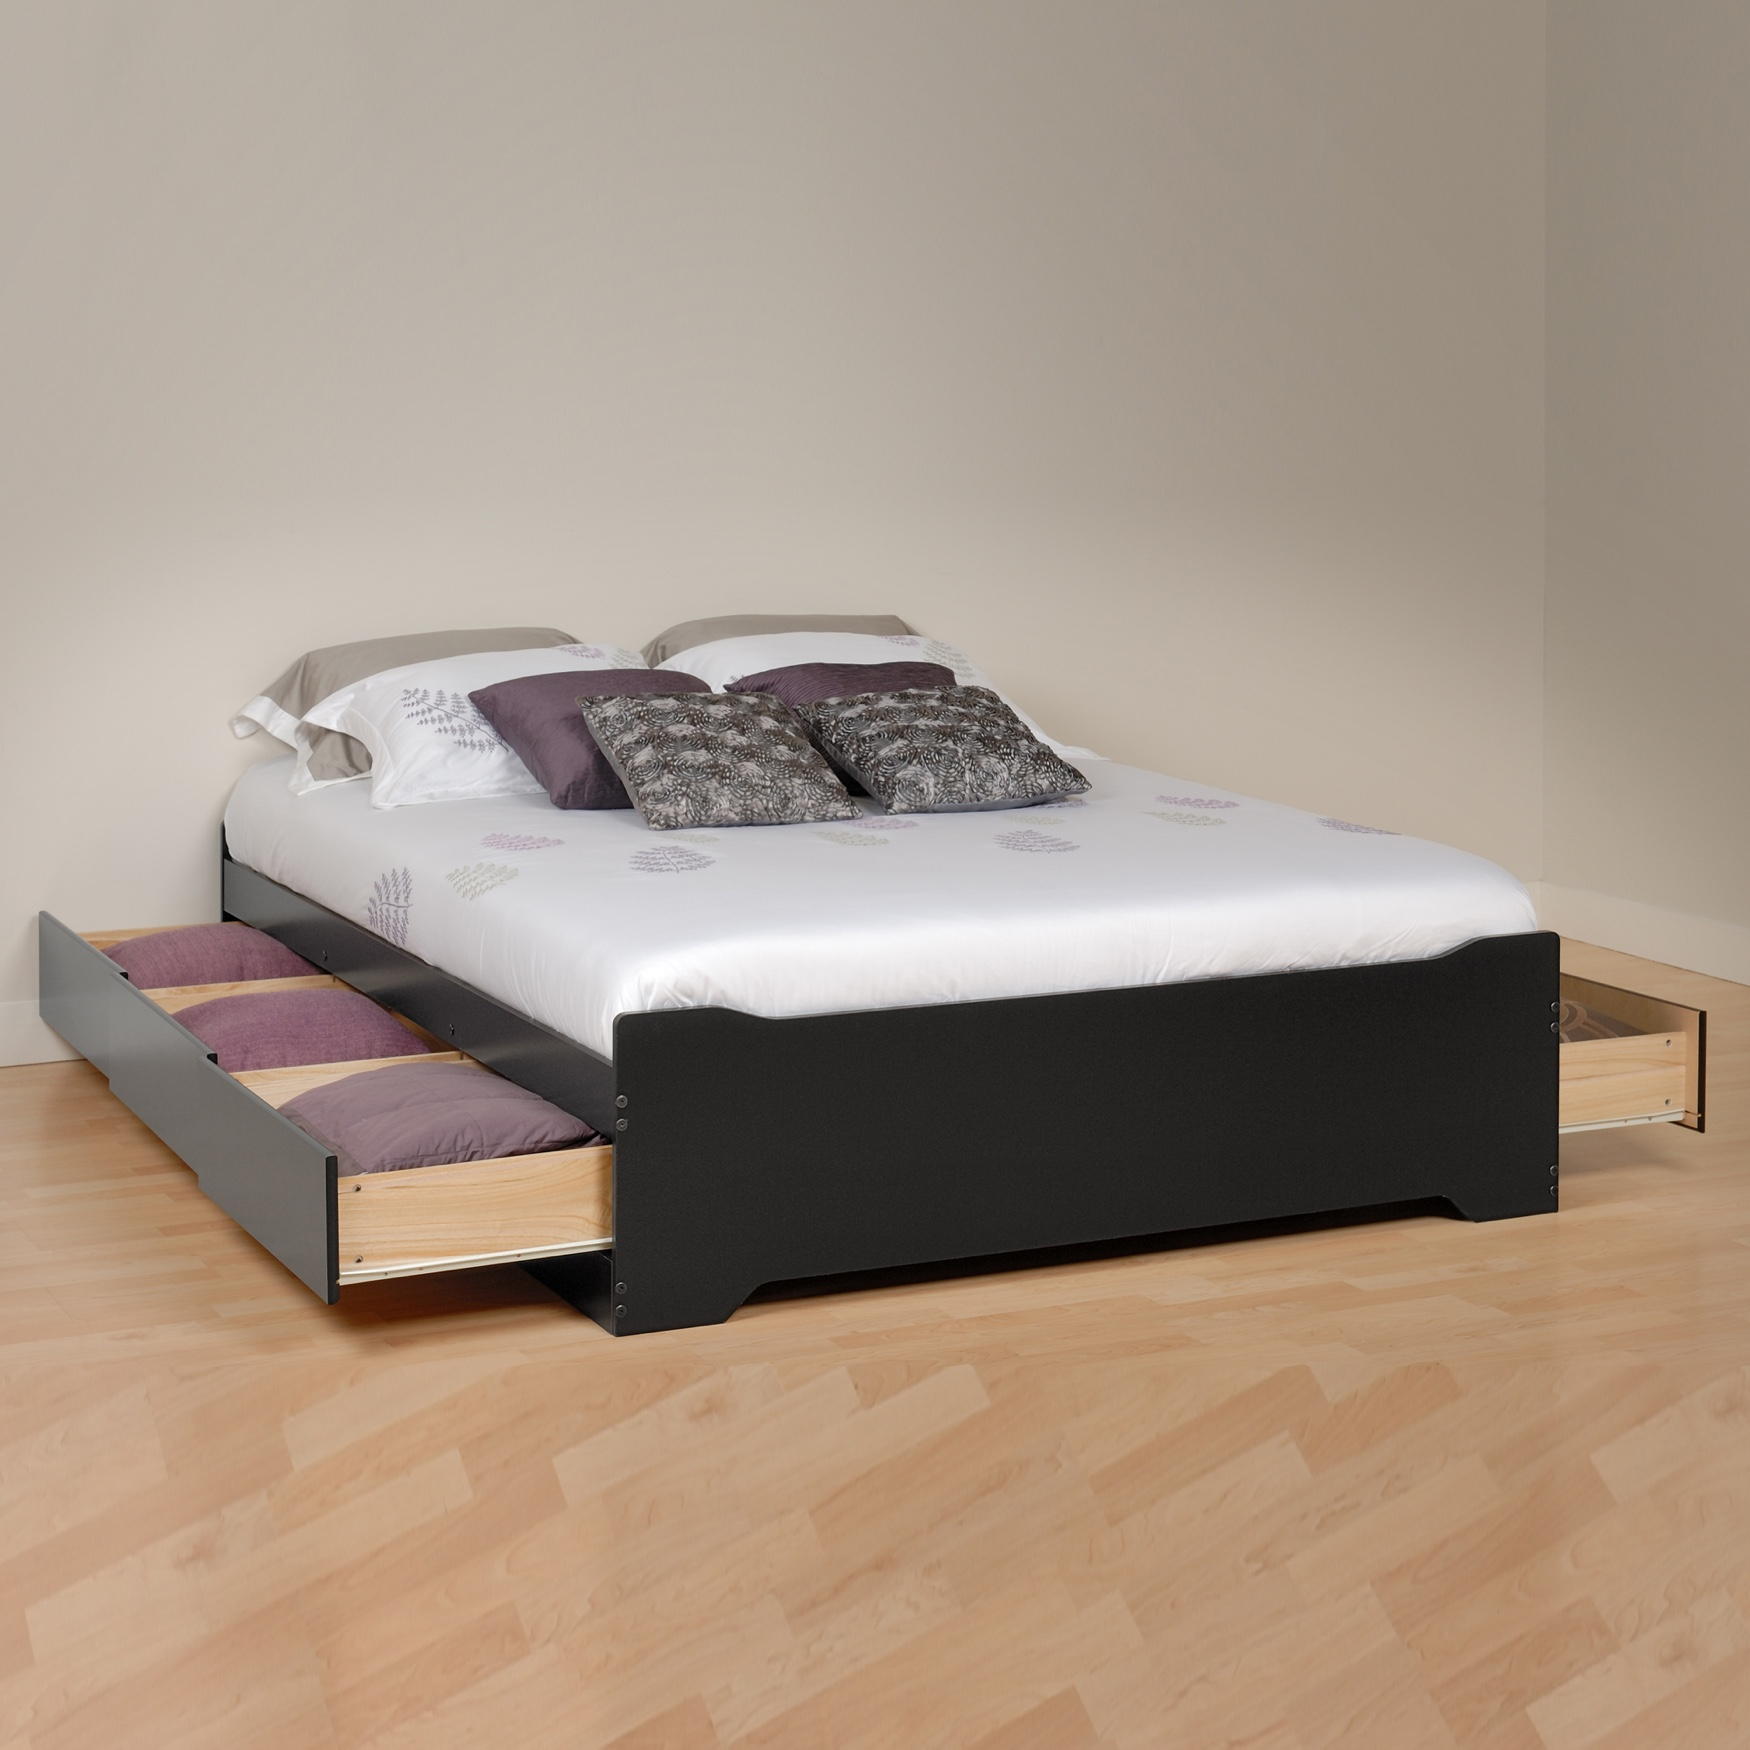 Coal Harbor Full Mate's Platform Storage Bed with 6 Drawers,